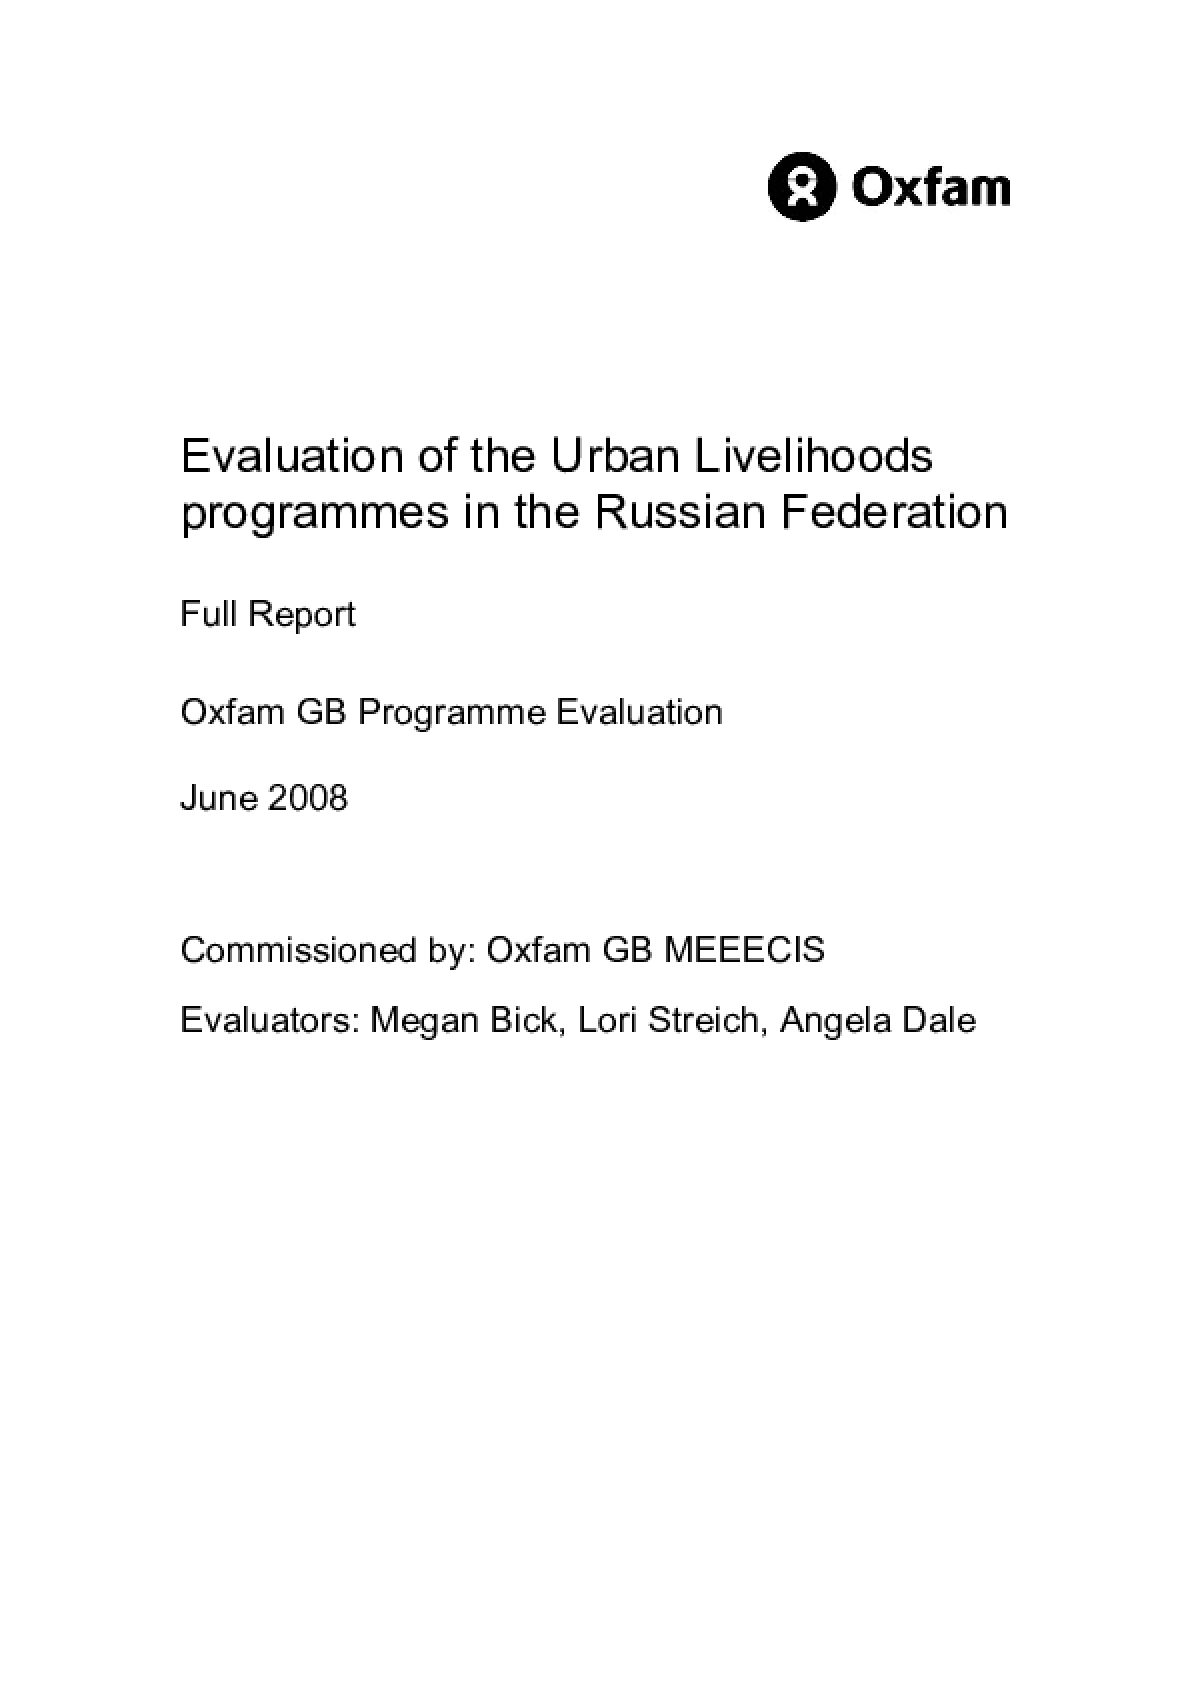 Evaluation of the Urban Livelihoods programmes in the Russian Federation